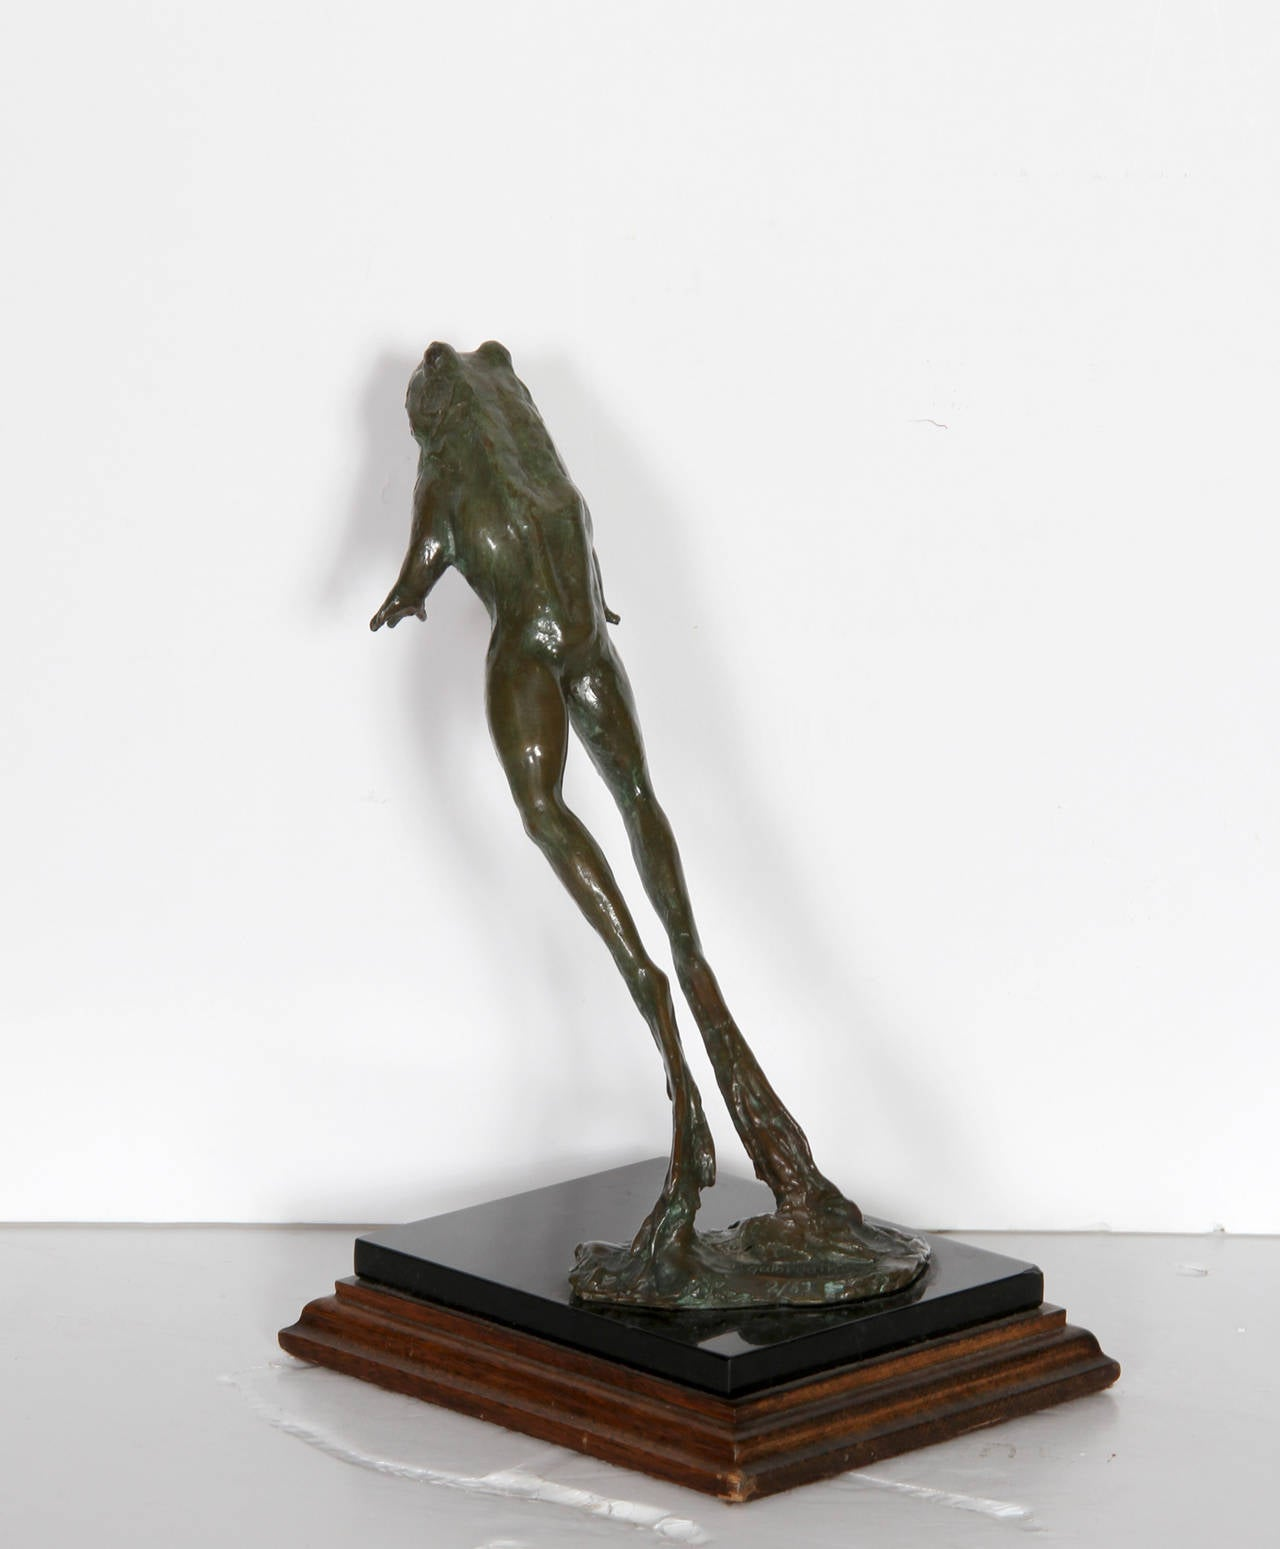 T galbreath leaping frog bronze sculpture for sale at - Bronze sculptures for sale ...